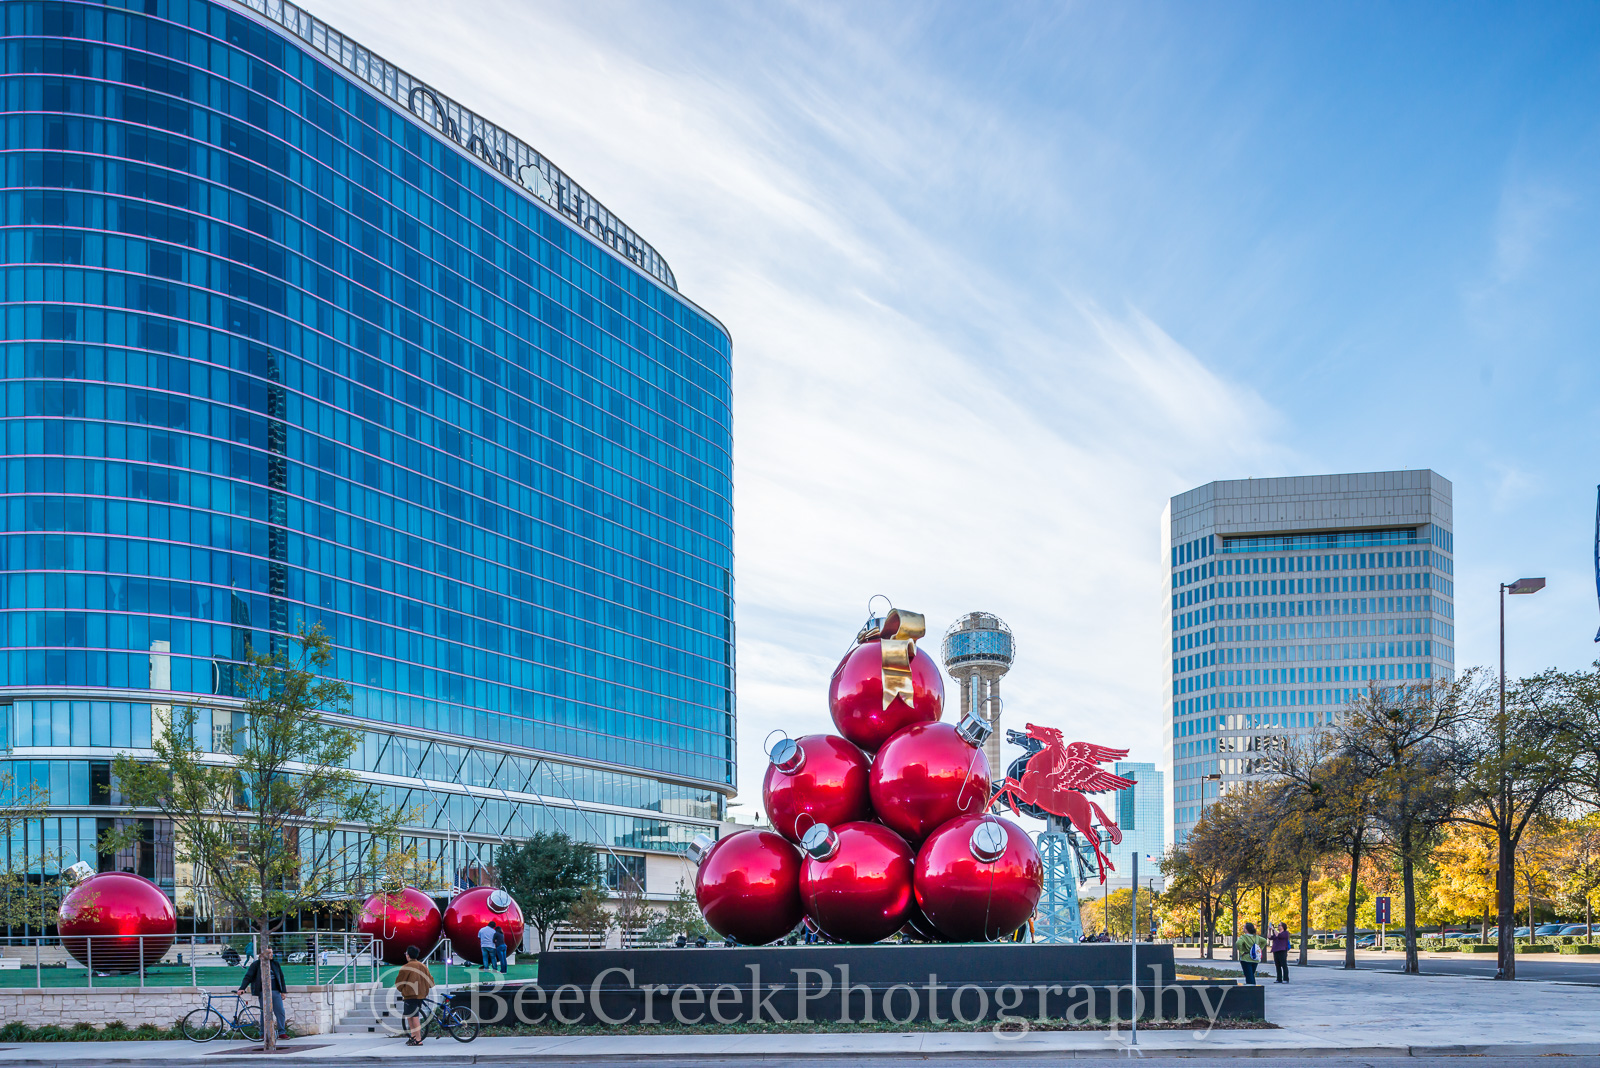 Christmas, Dallas, Omni Hotel, Pegaus, bars, buildings, cities, city, cityscape, cityscapes, downtown, historic, holiday, lifestyle, ornaments, red, restaurants, reunion tower, photo